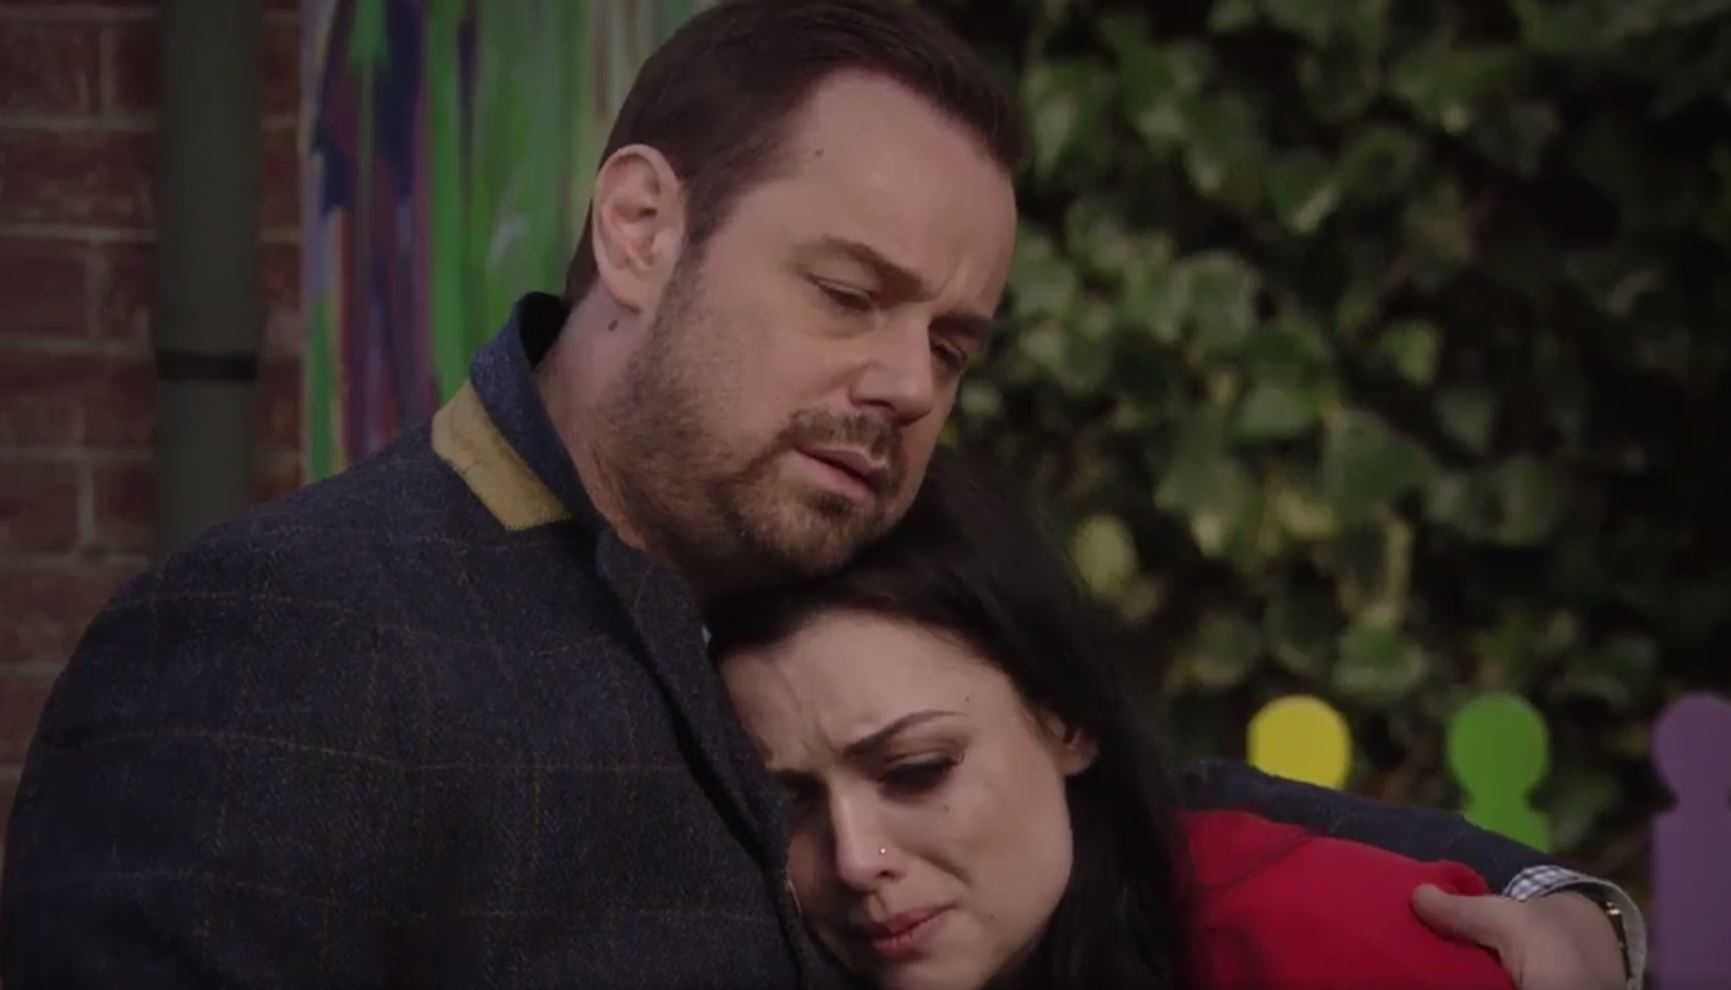 EastEnders fans beg scriptwriters to get Mick Carter and Whitney Dean back together